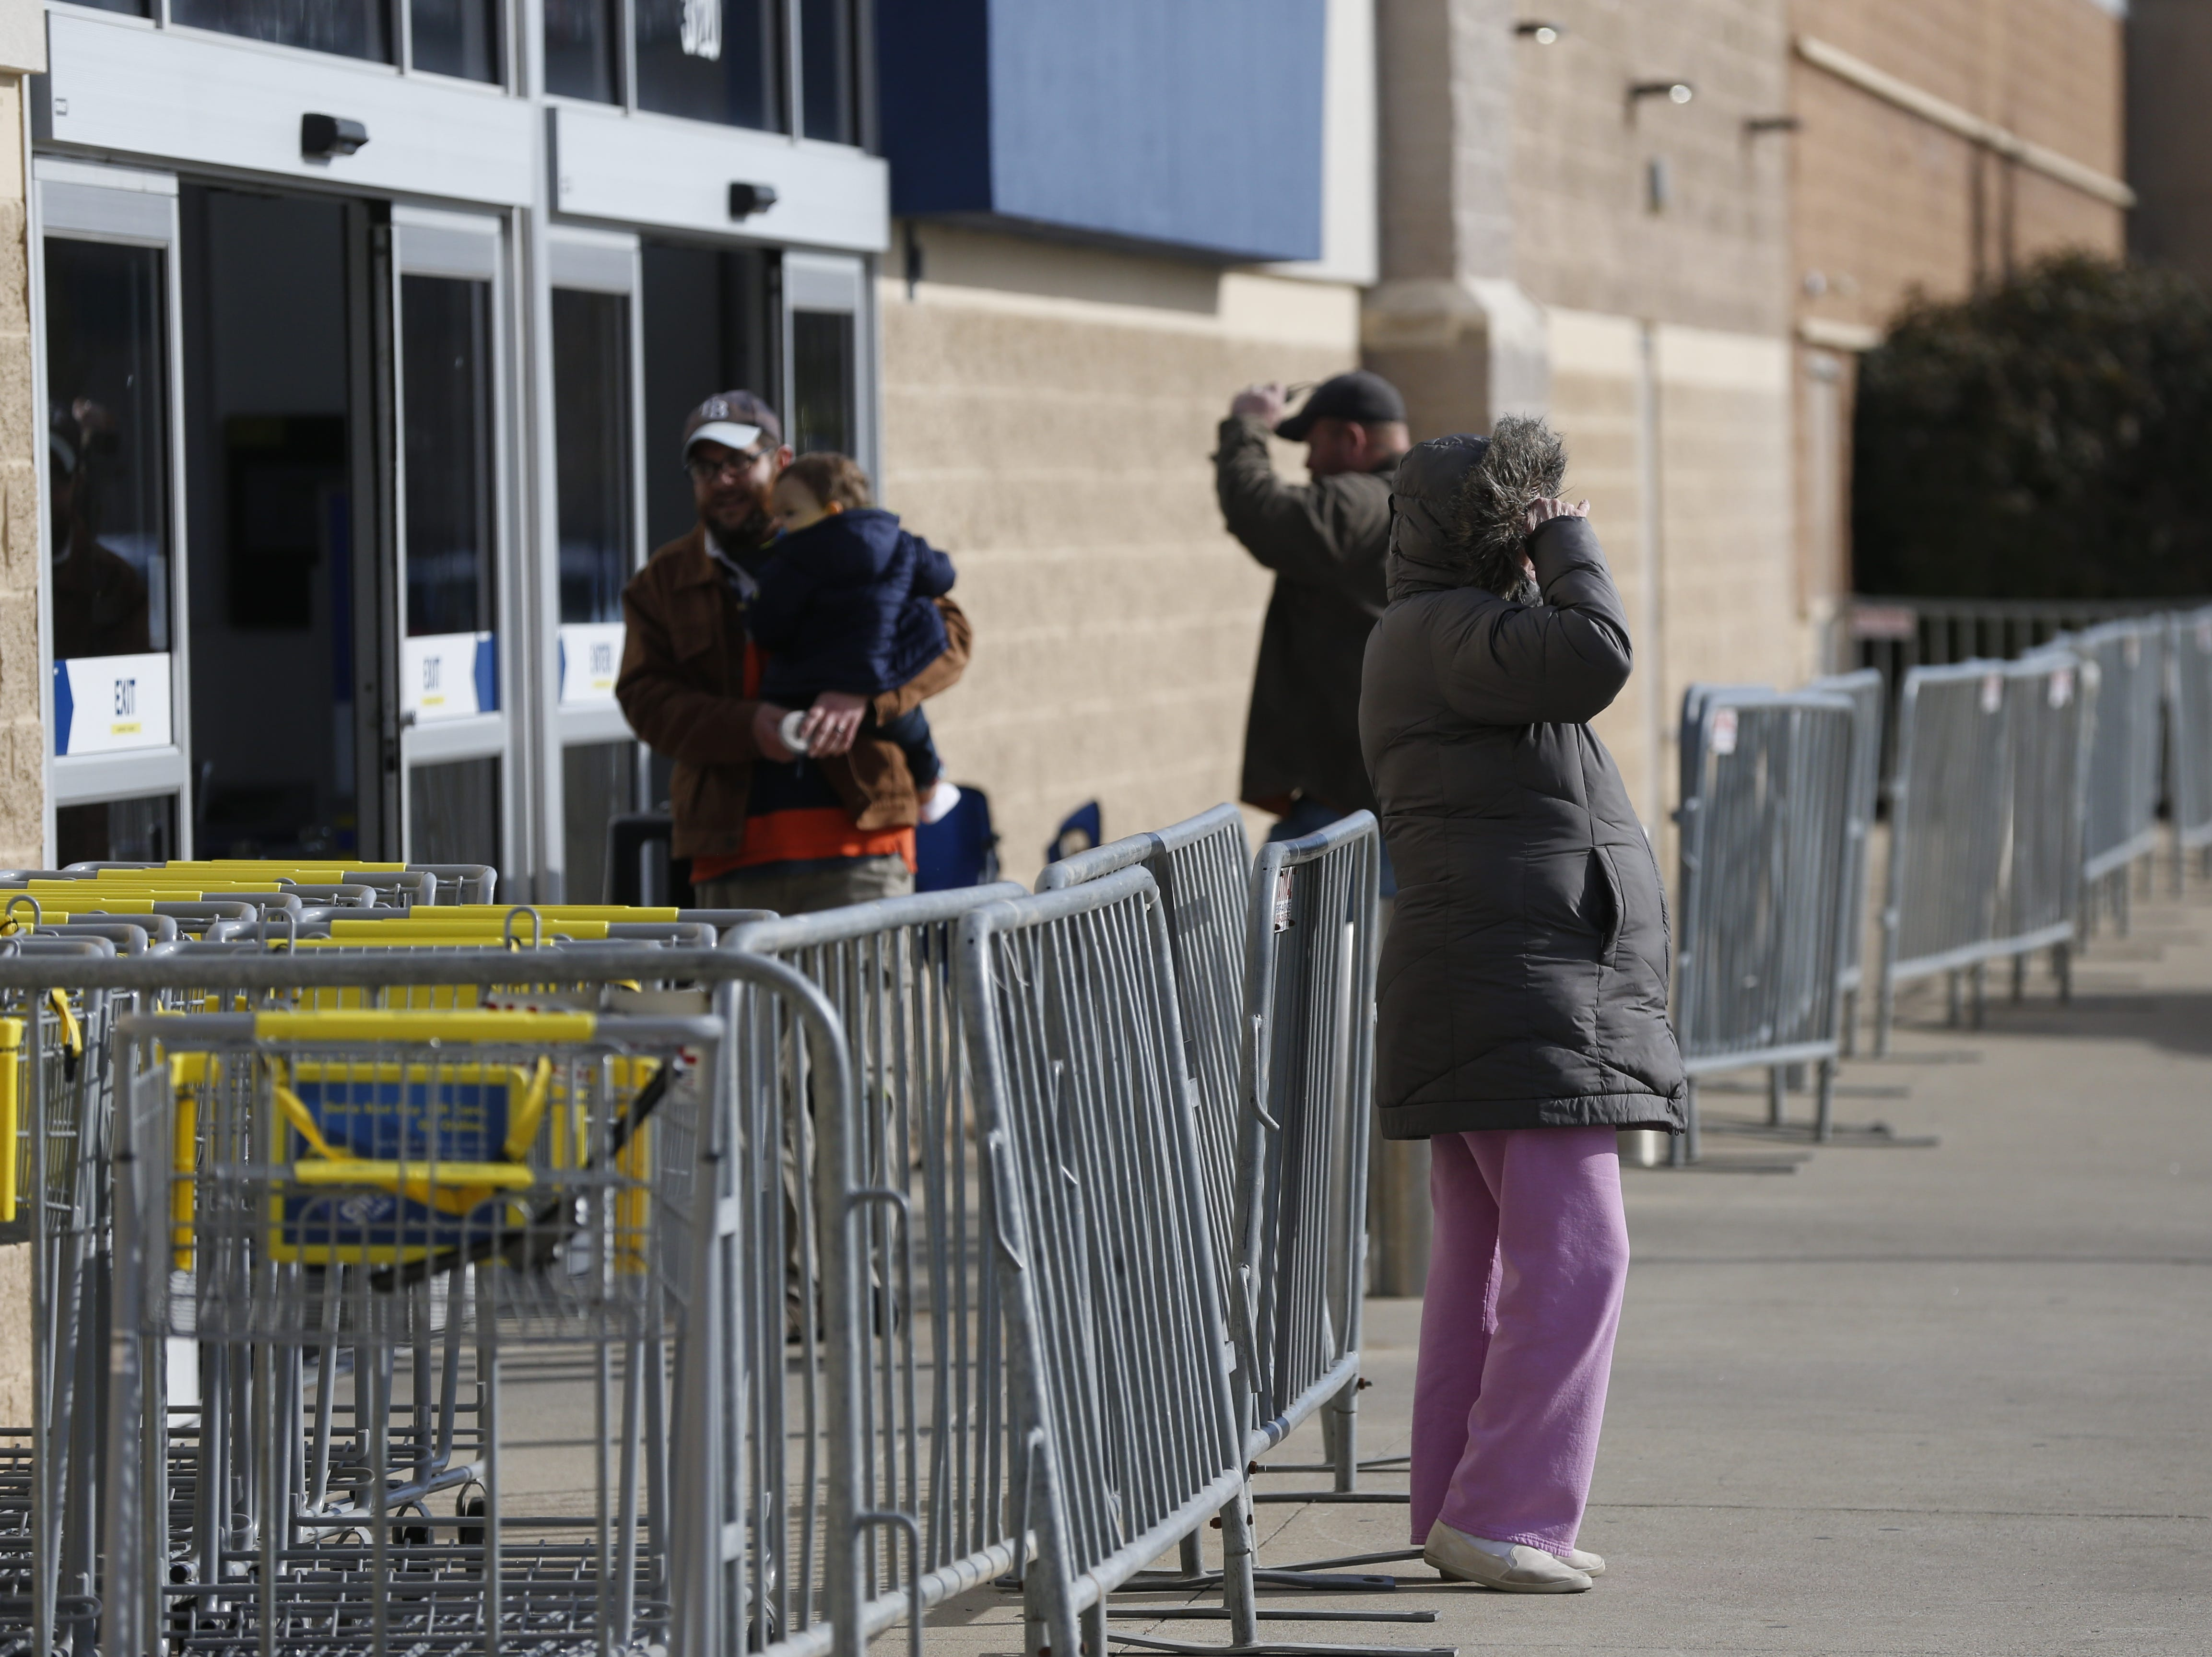 The line was gone but the barriers remained Friday morning outside the Richmond Best Buy along National Road East on Nov. 23, 2018.